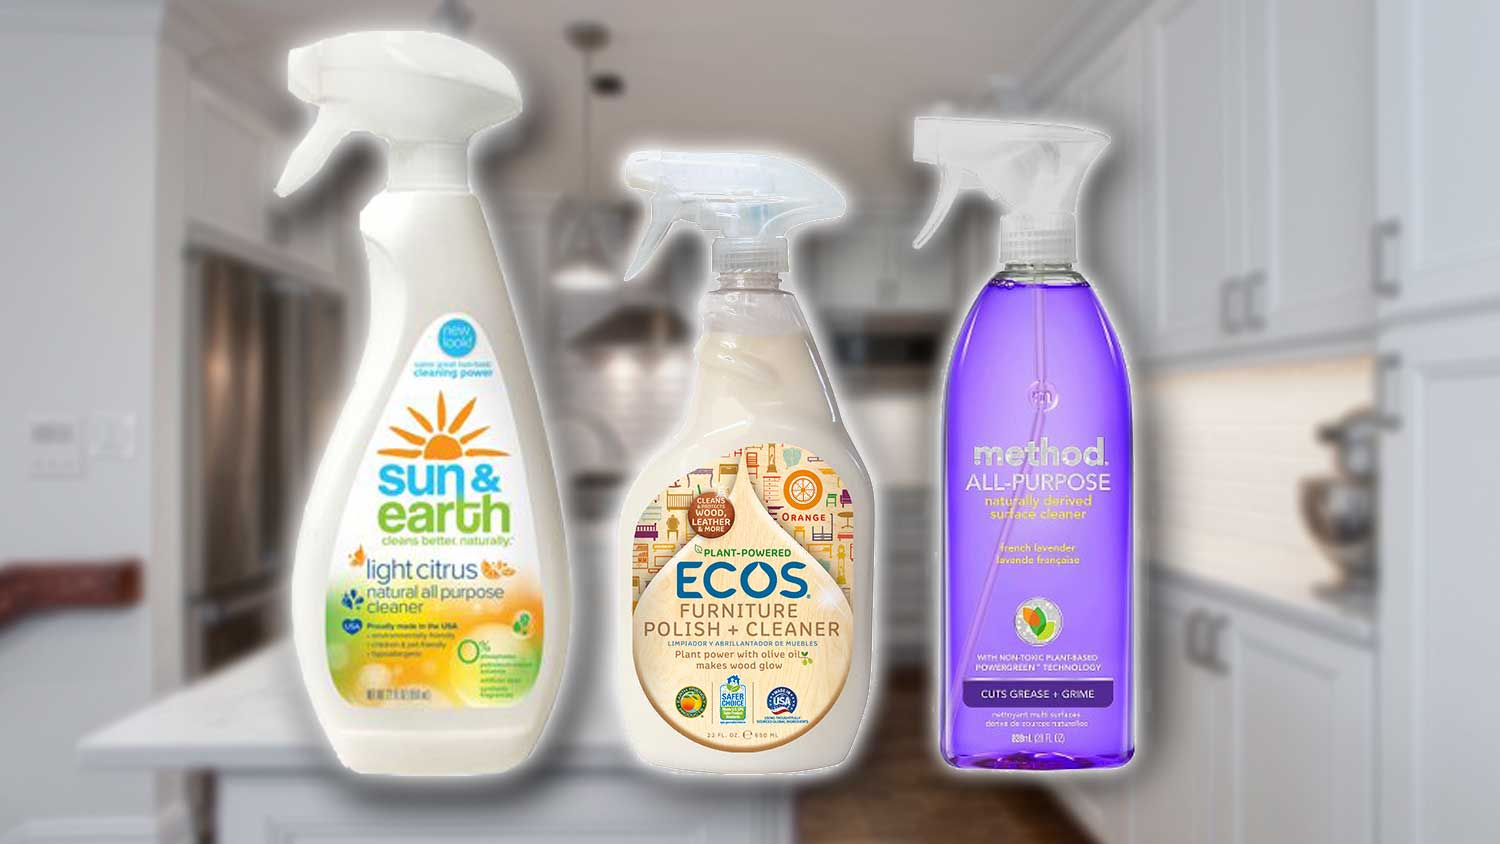 The Complete Guide to Cruelty-Free Cleaning Products